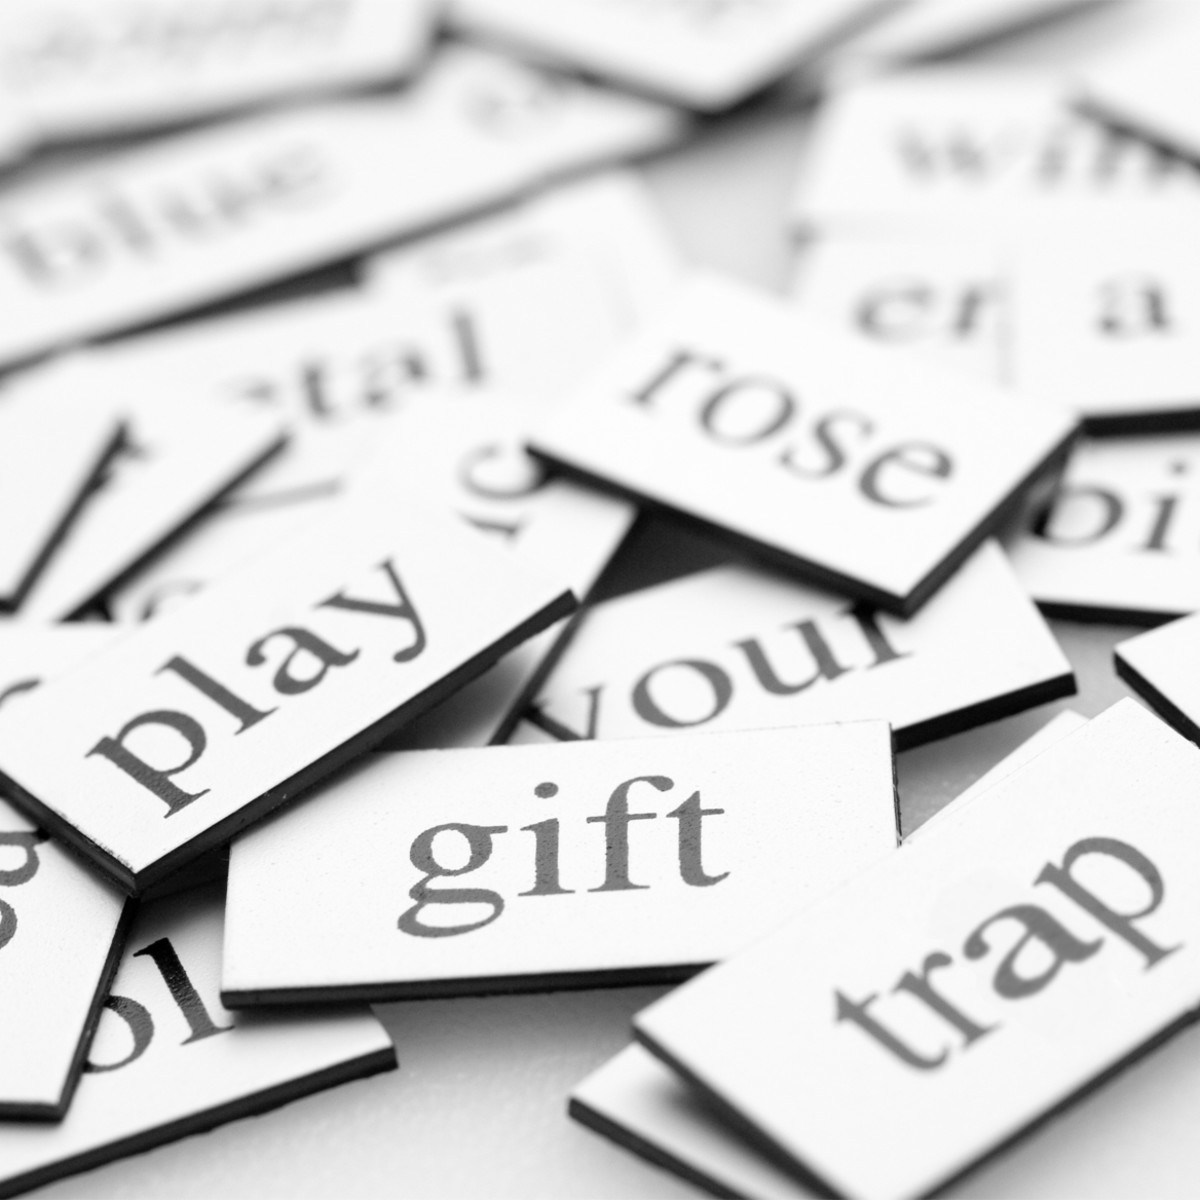 Magnetic poetry is a great addition to your classroom decor.  Students come up with wonderful short poems and leave them for everyone to discover.